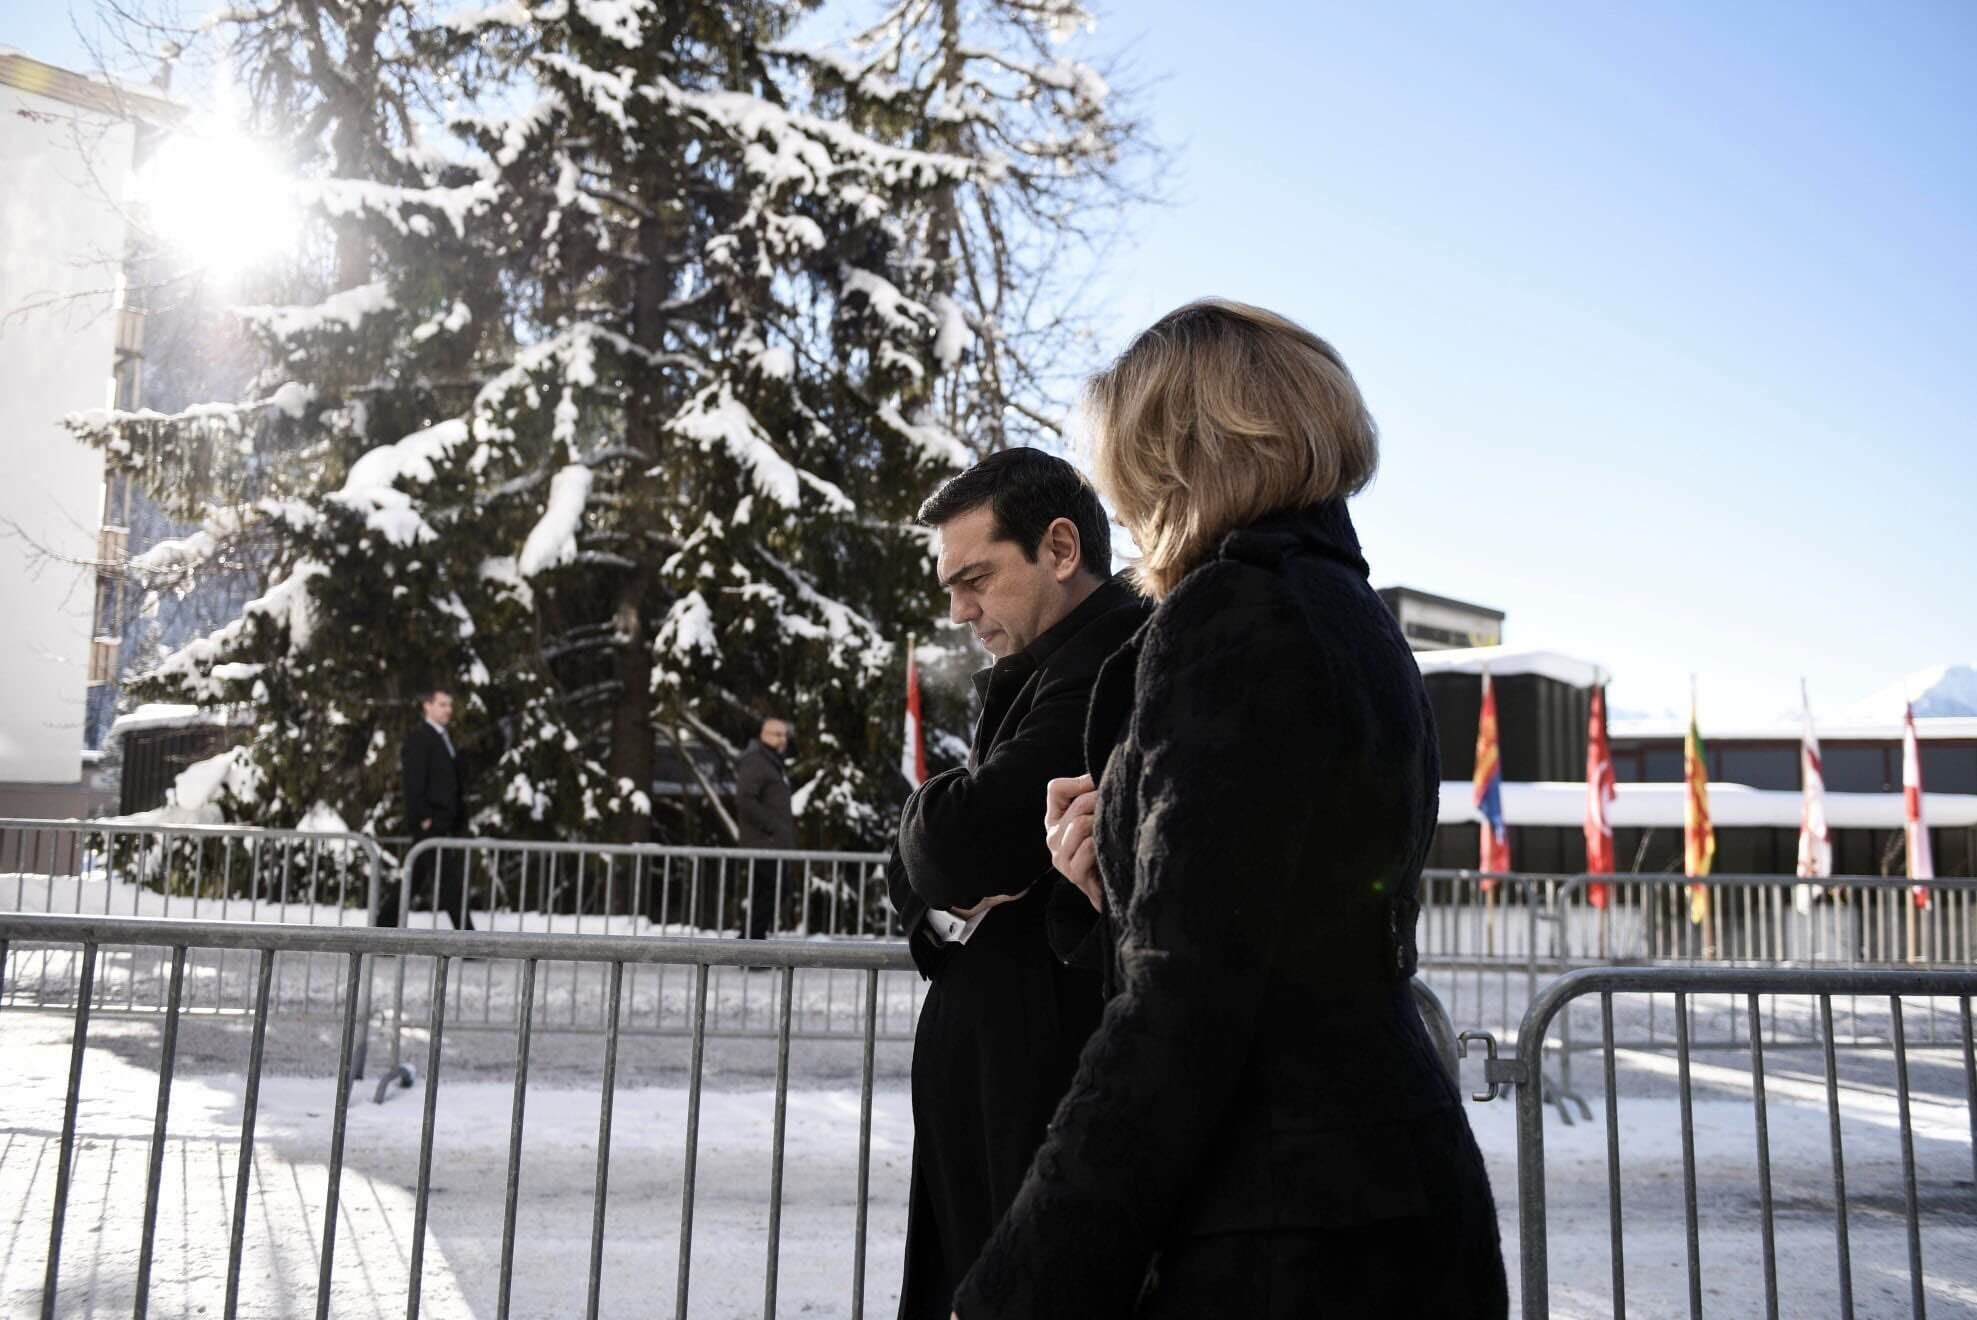 Arianna Huffington met with Greek Prime Minister Alexis Tsipras in Davos, where the two discussed Greece's future.